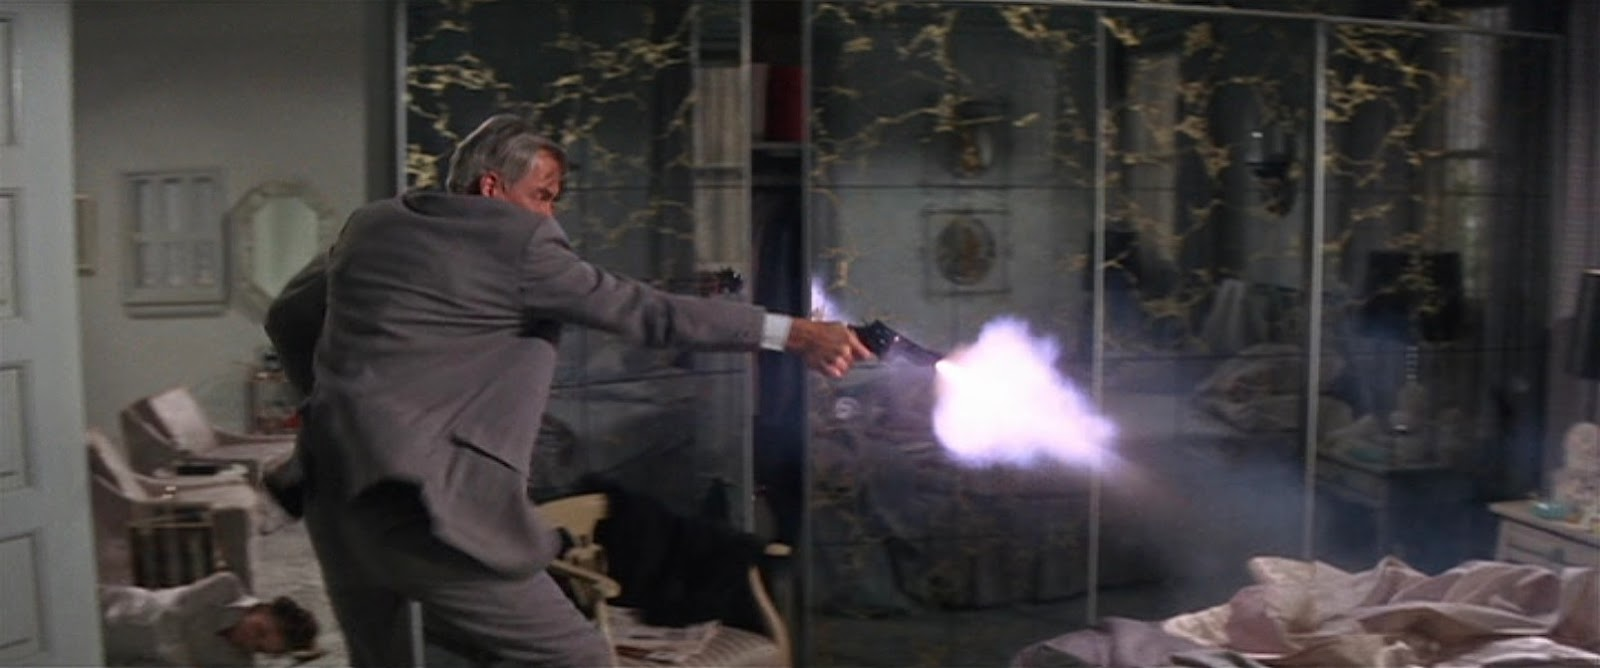 Lee Marvin in the Movie 'Point Blank'